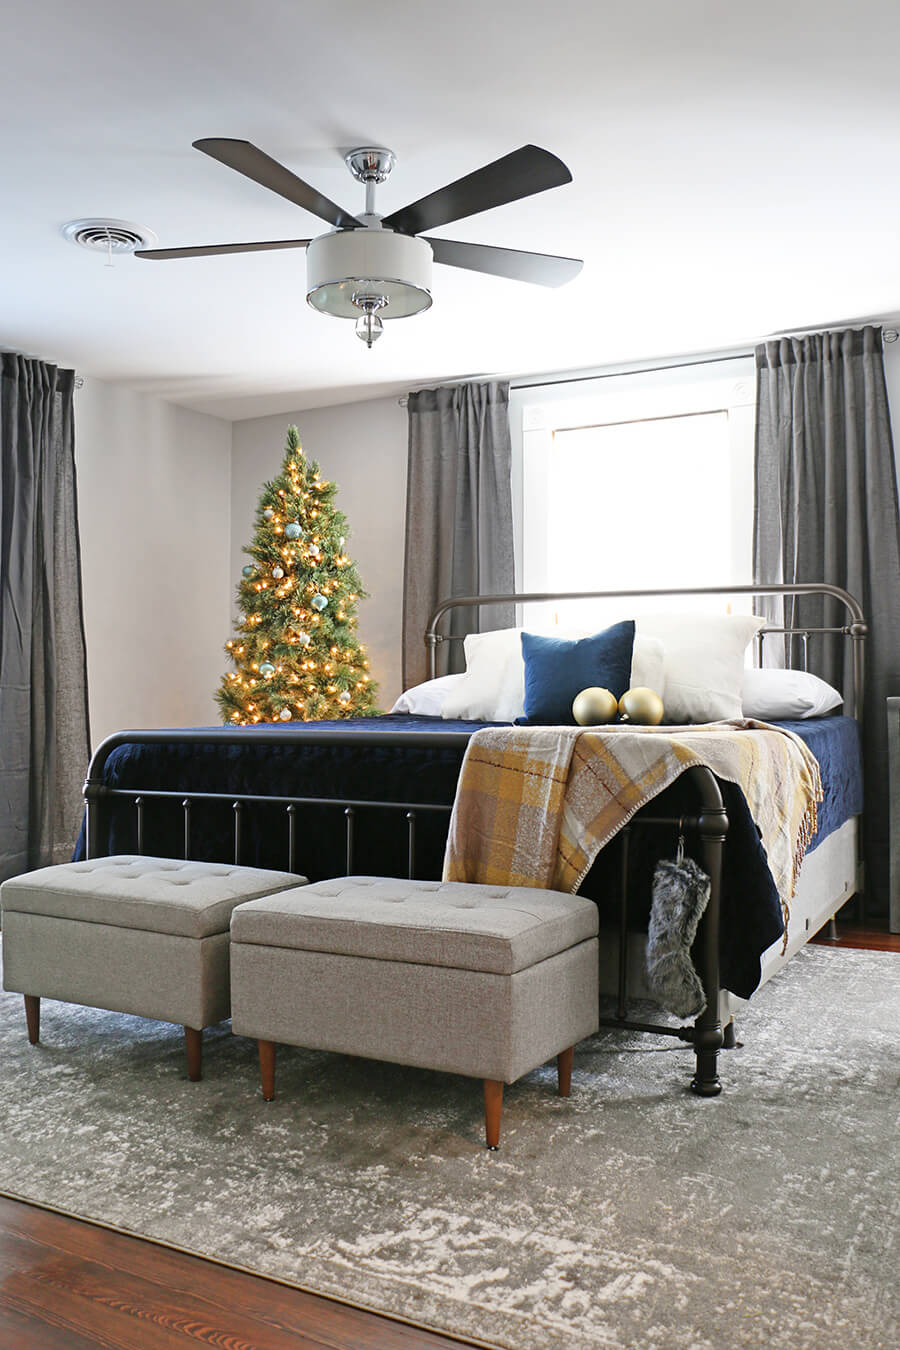 Blue Bedroom Decorated for Christmas